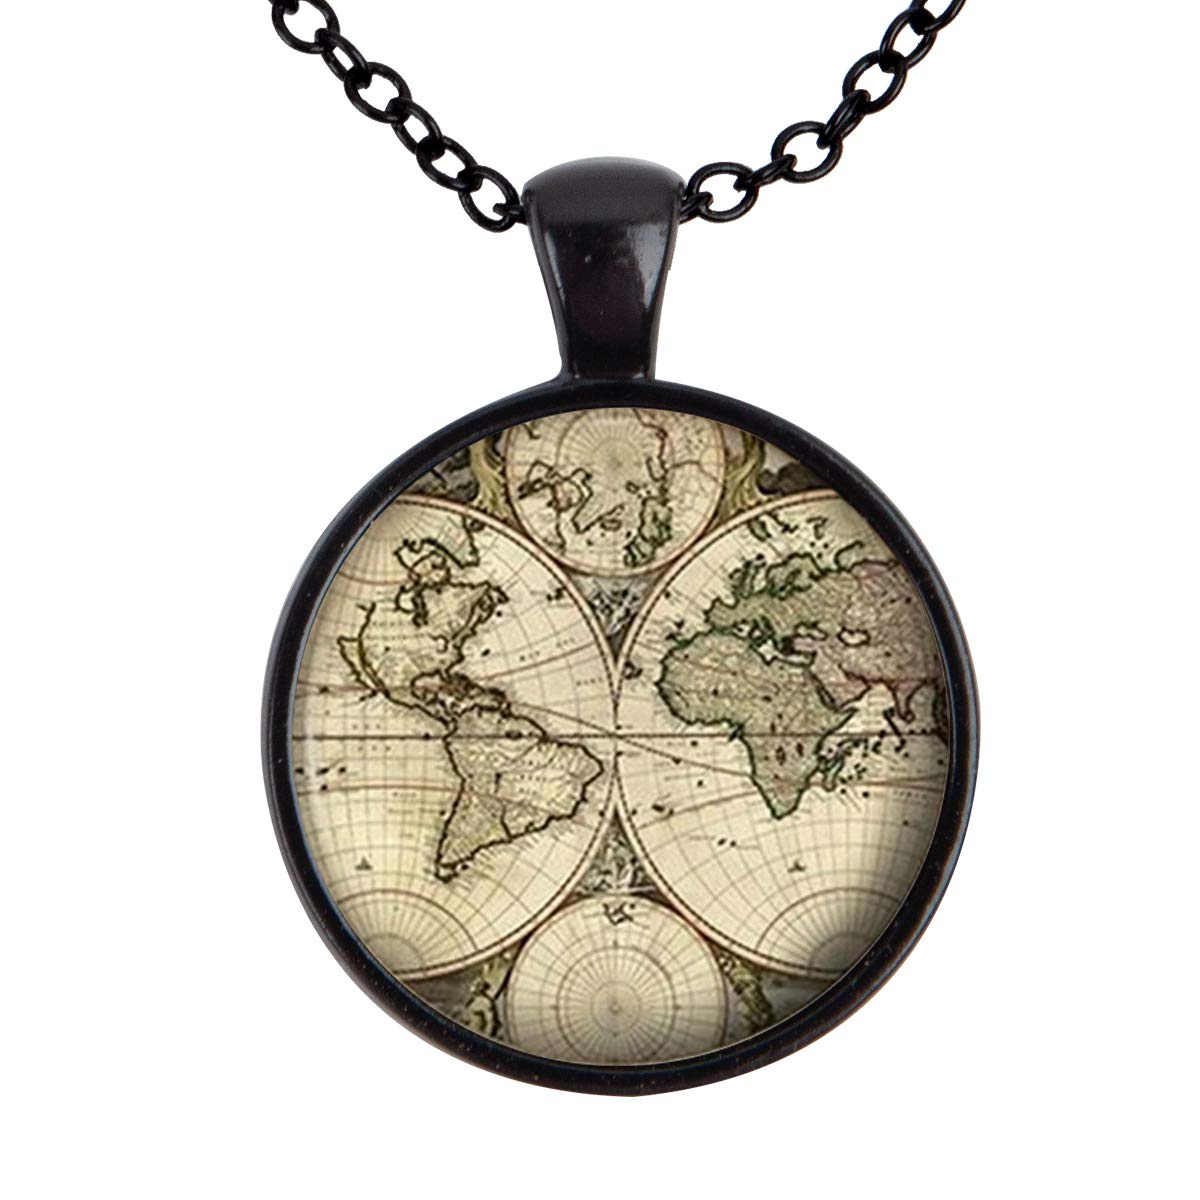 Lightrain World Map Old Antique Atlas Picture Pendant Necklace Vintage Bronze Chain Statement Necklace Handmade Jewelry Gifts